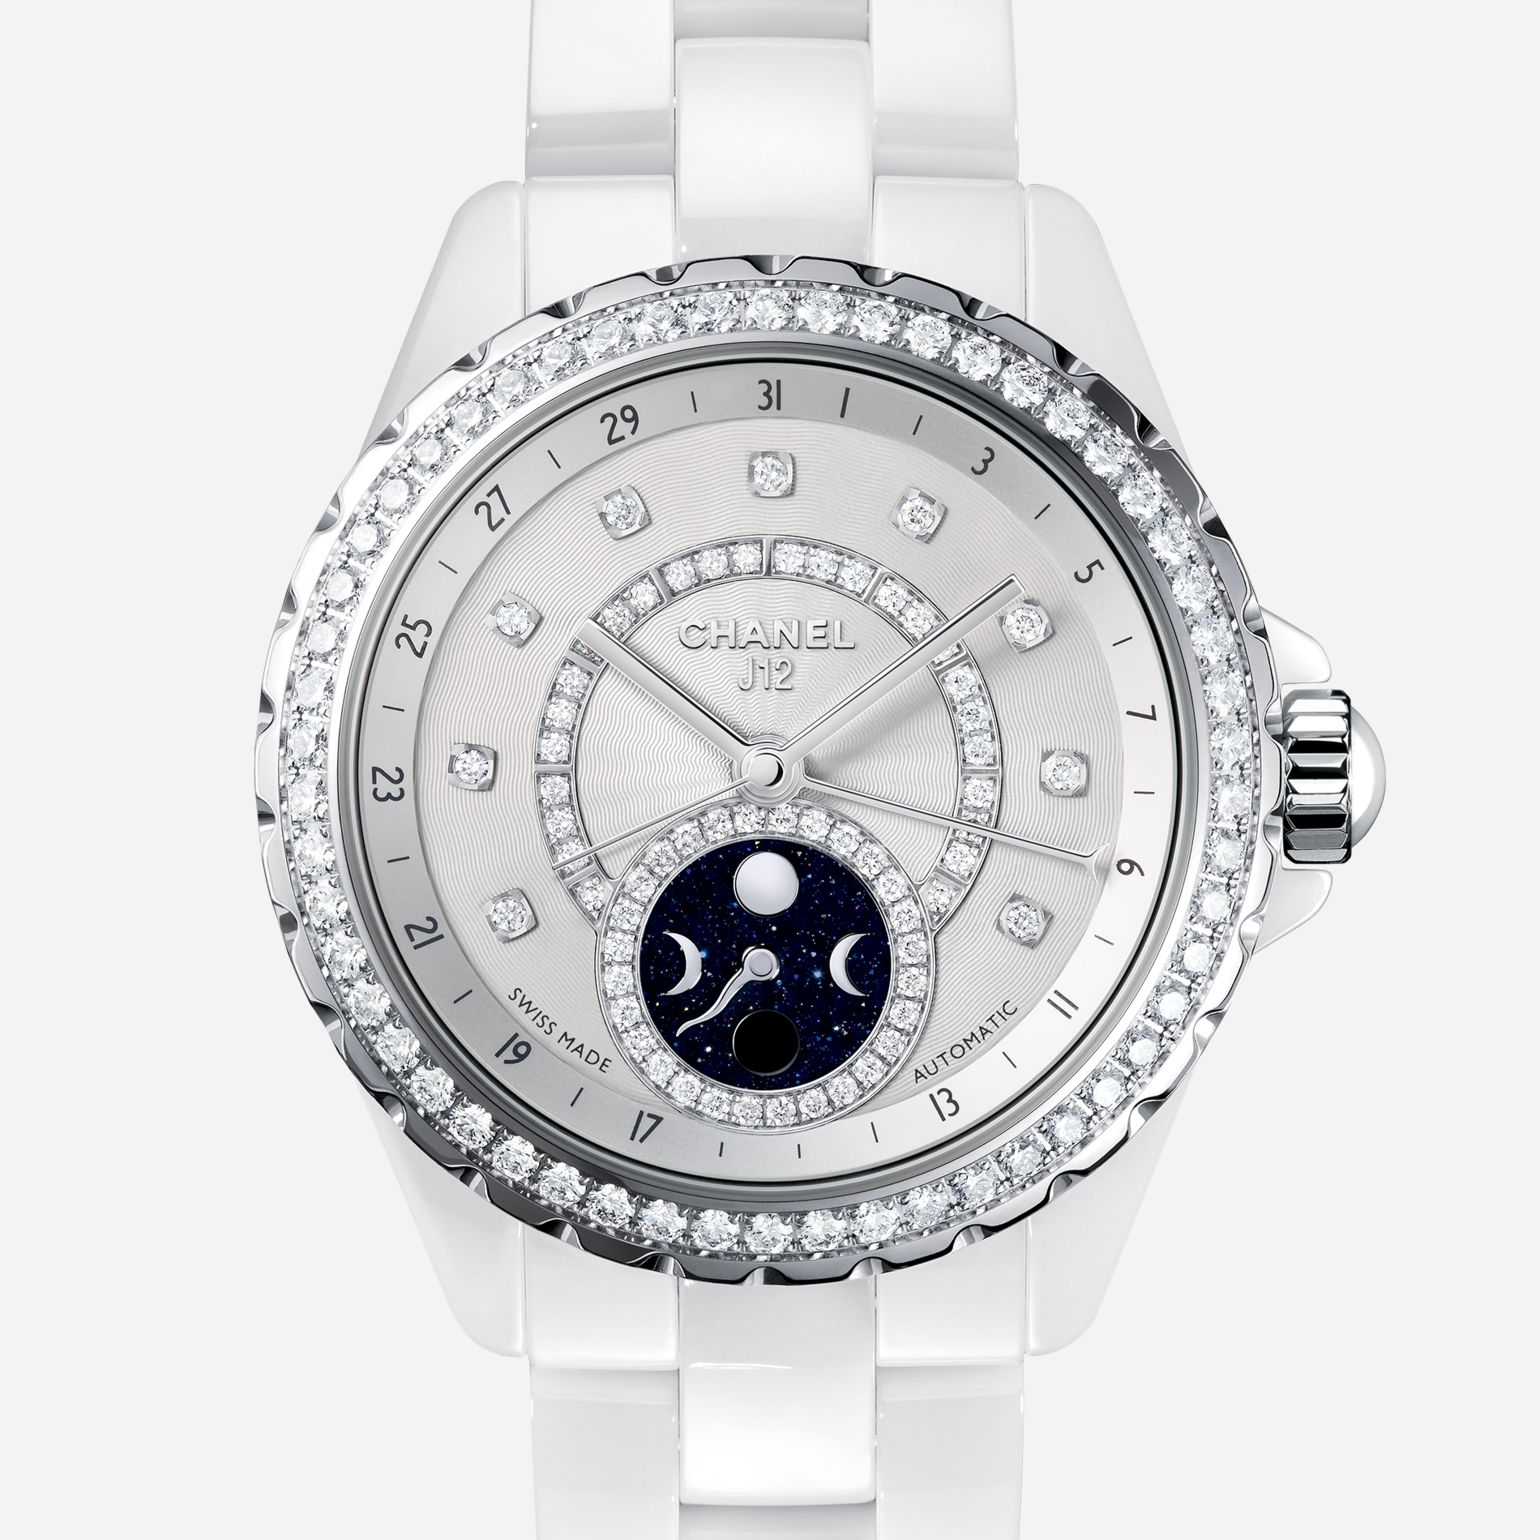 J12 Moon phase White ceramic and steel case, bezel, indicators and moon phase counter set with diamonds